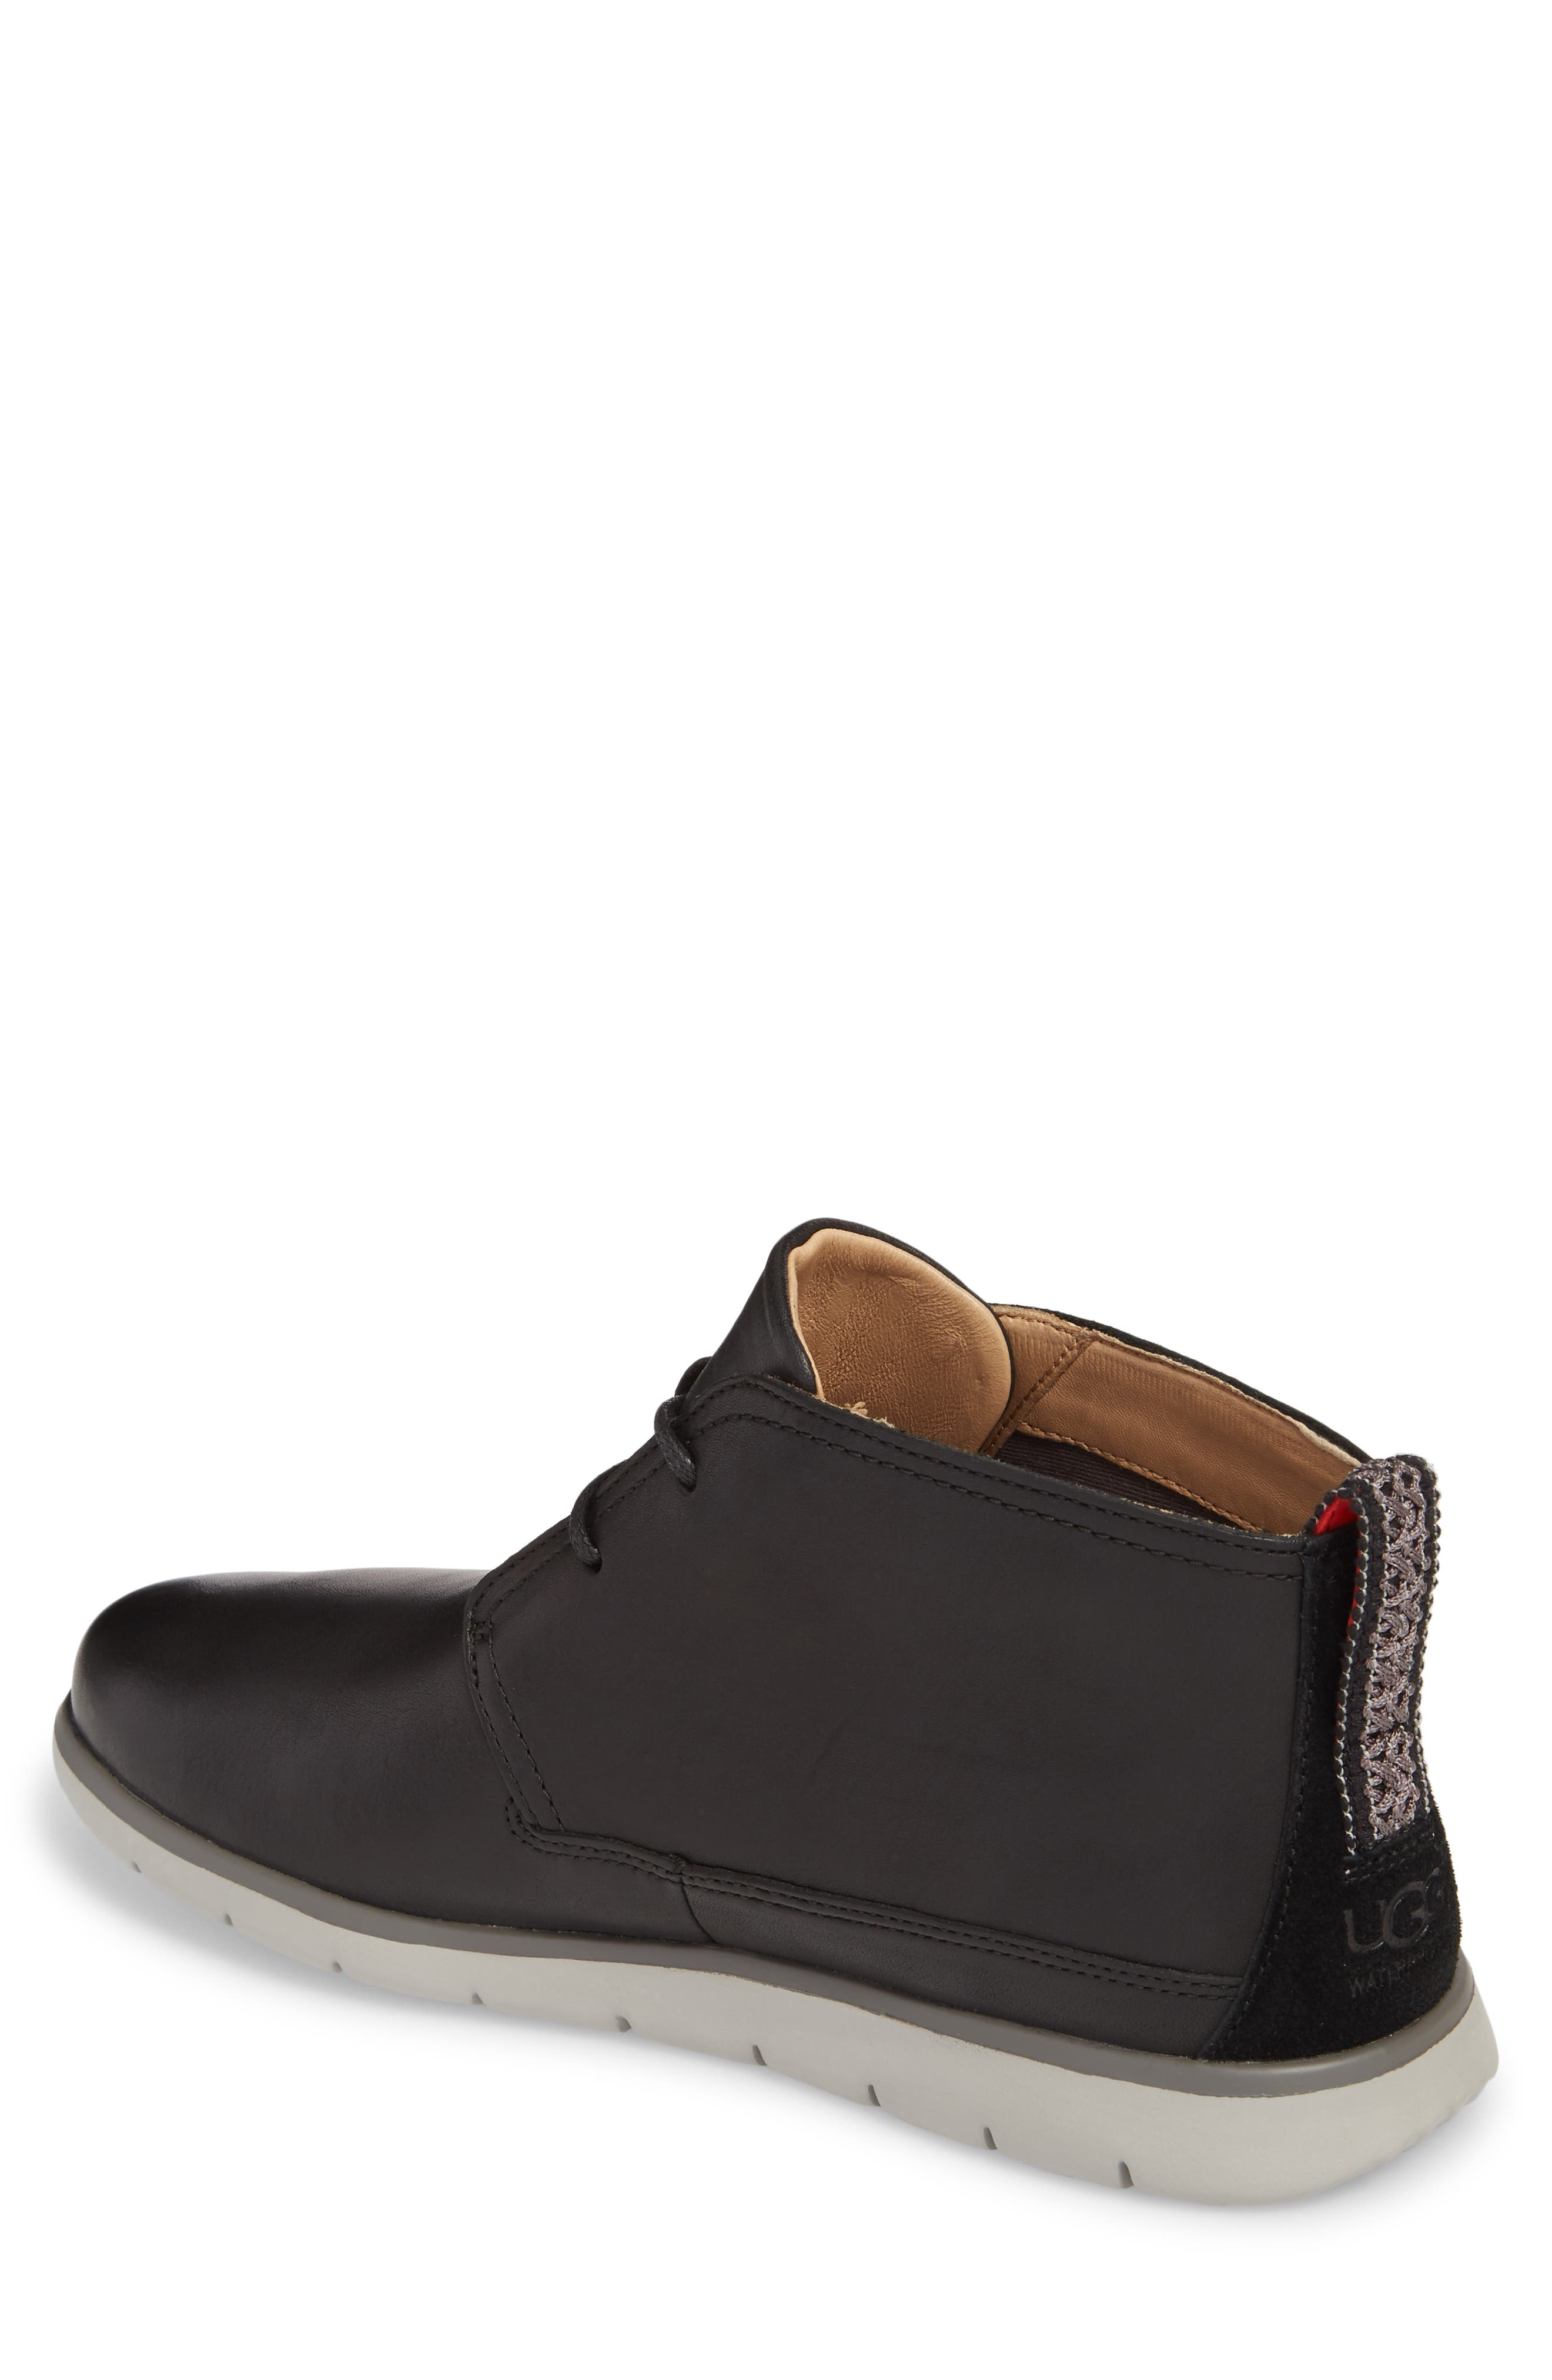 Freamon Chukka Boot,                             Alternate thumbnail 2, color,                             001